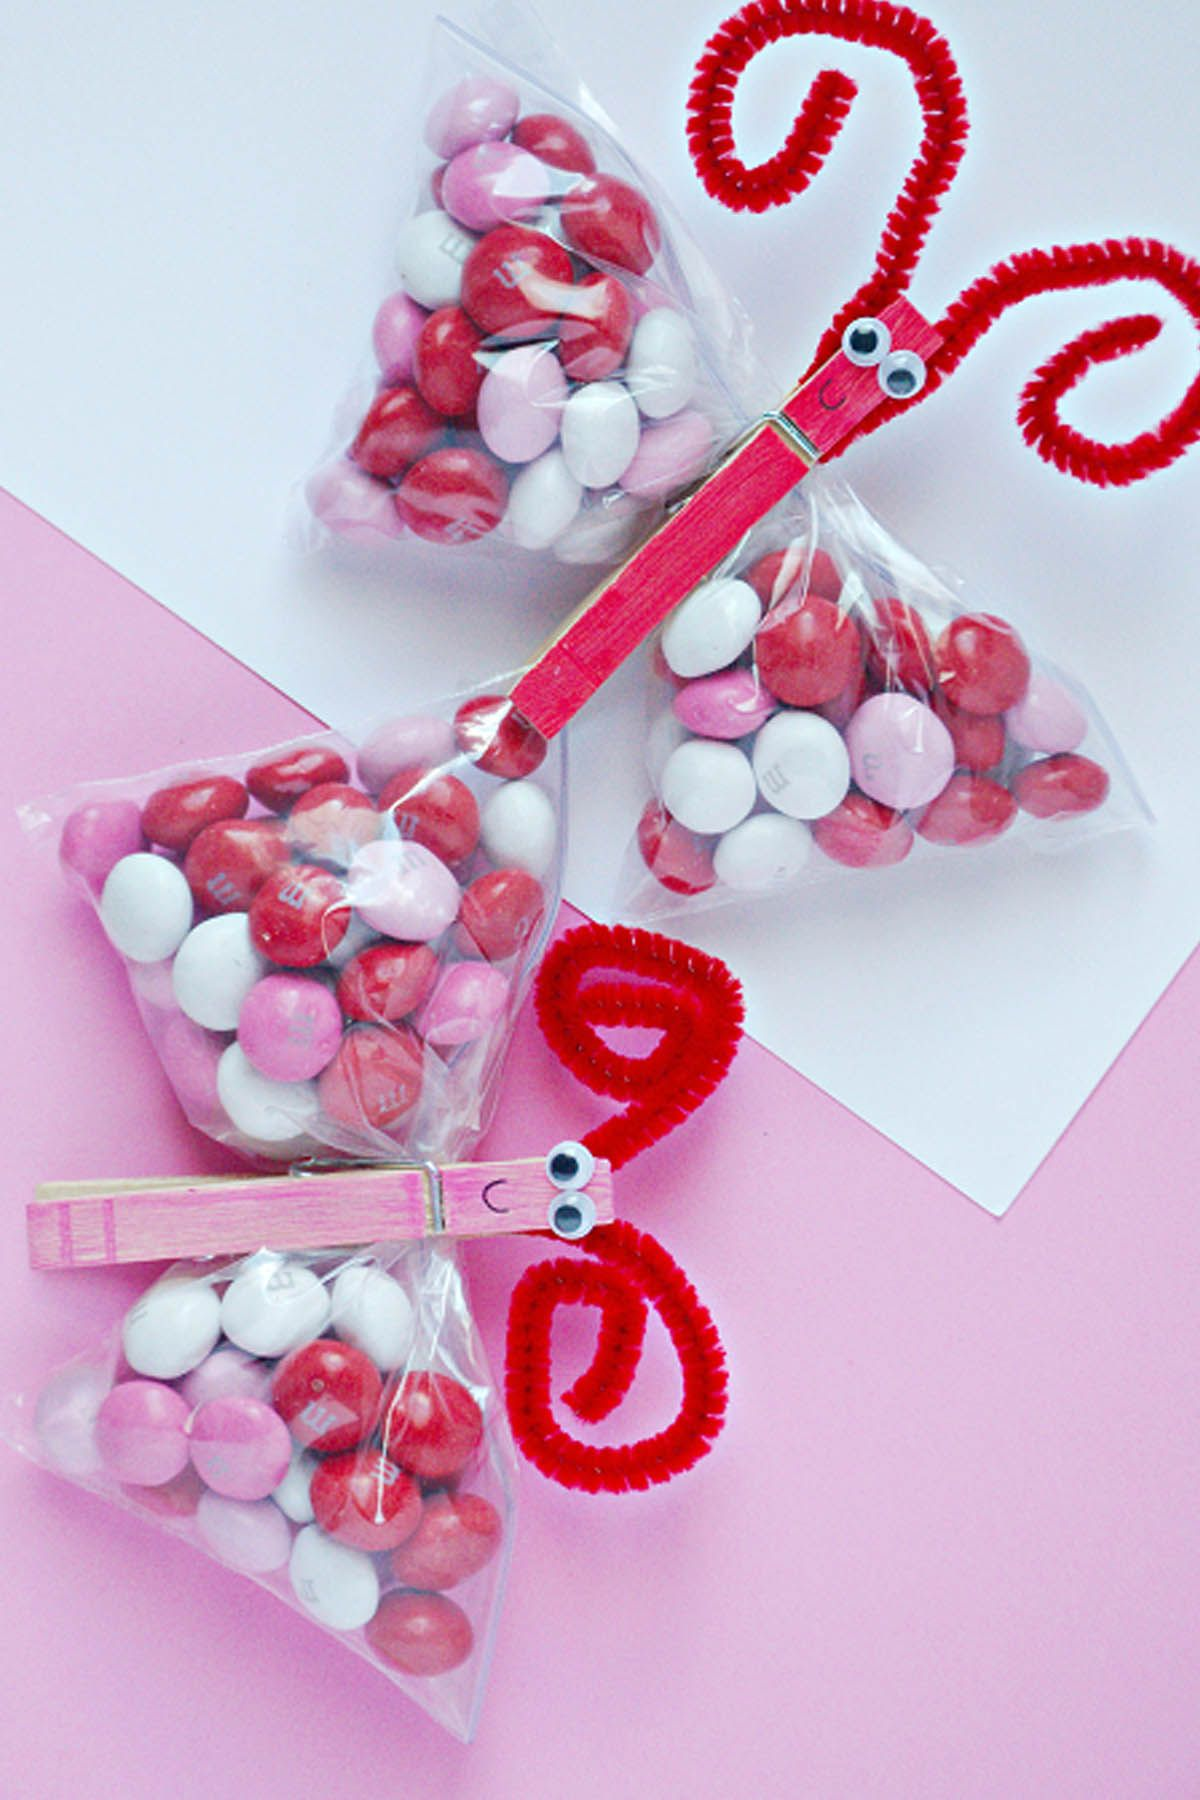 faeee5174550 28 Valentine s Day Crafts for Kids - Fun Heart Arts and Crafts Projects for  Toddlers and Kids